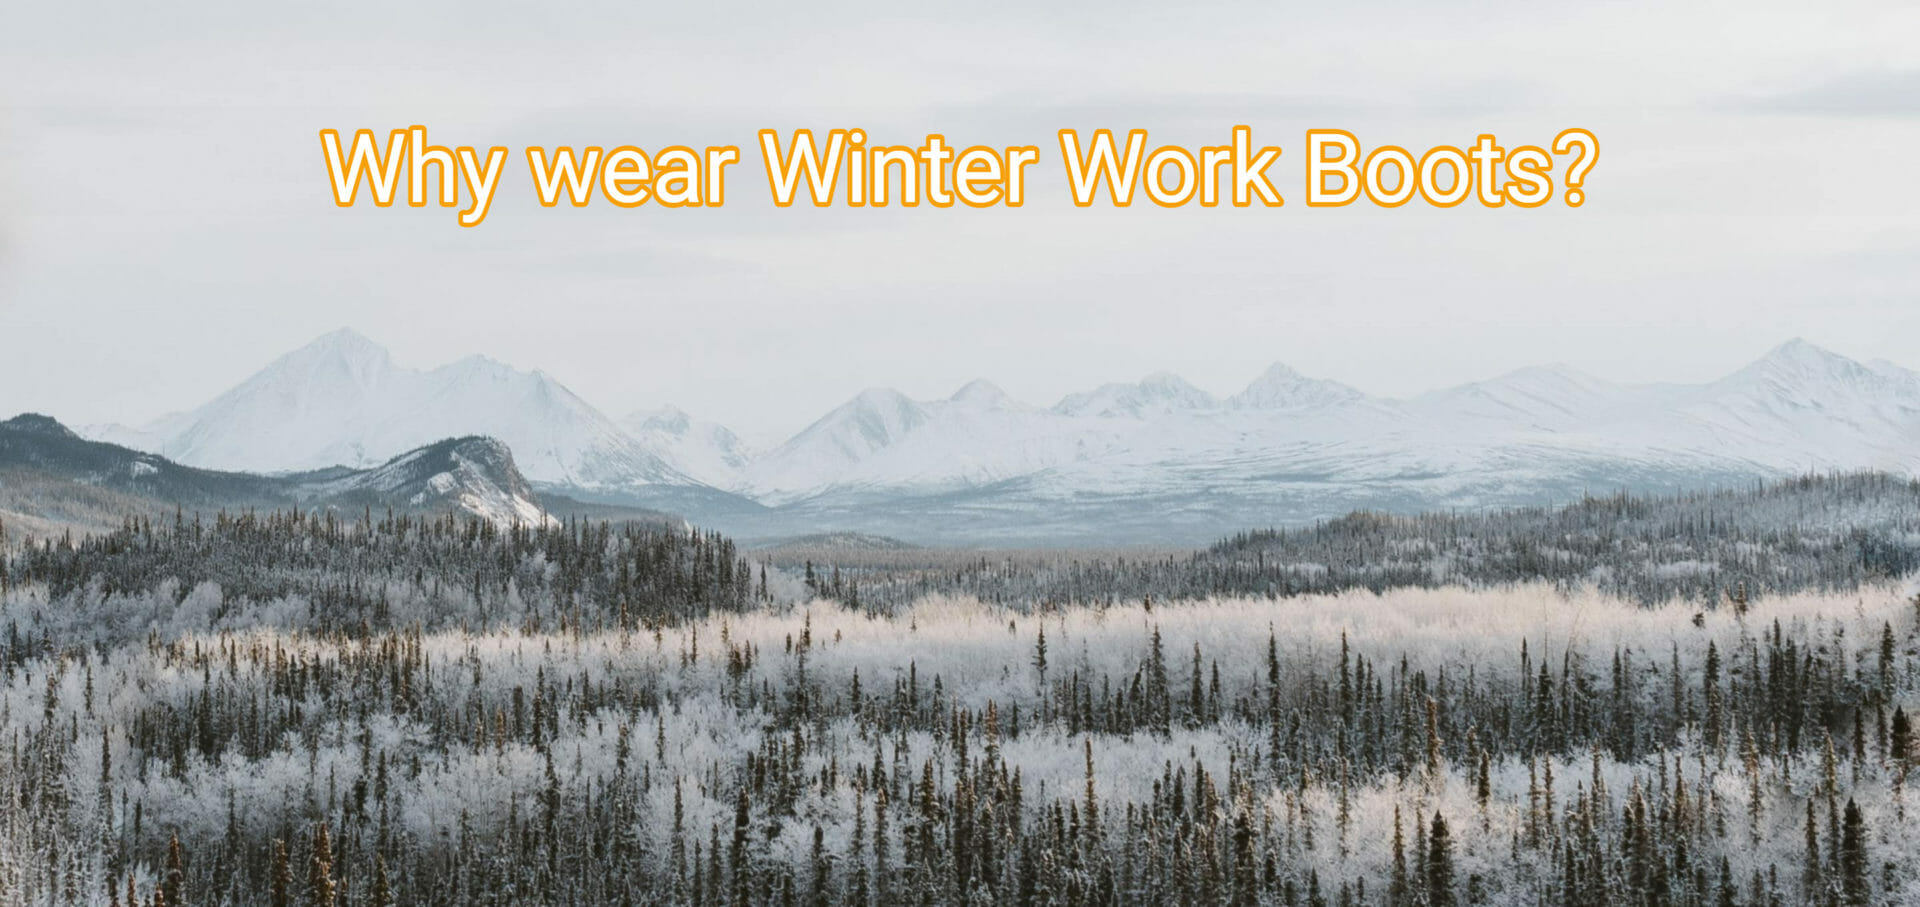 wear winter work boots for comfort in cold weather